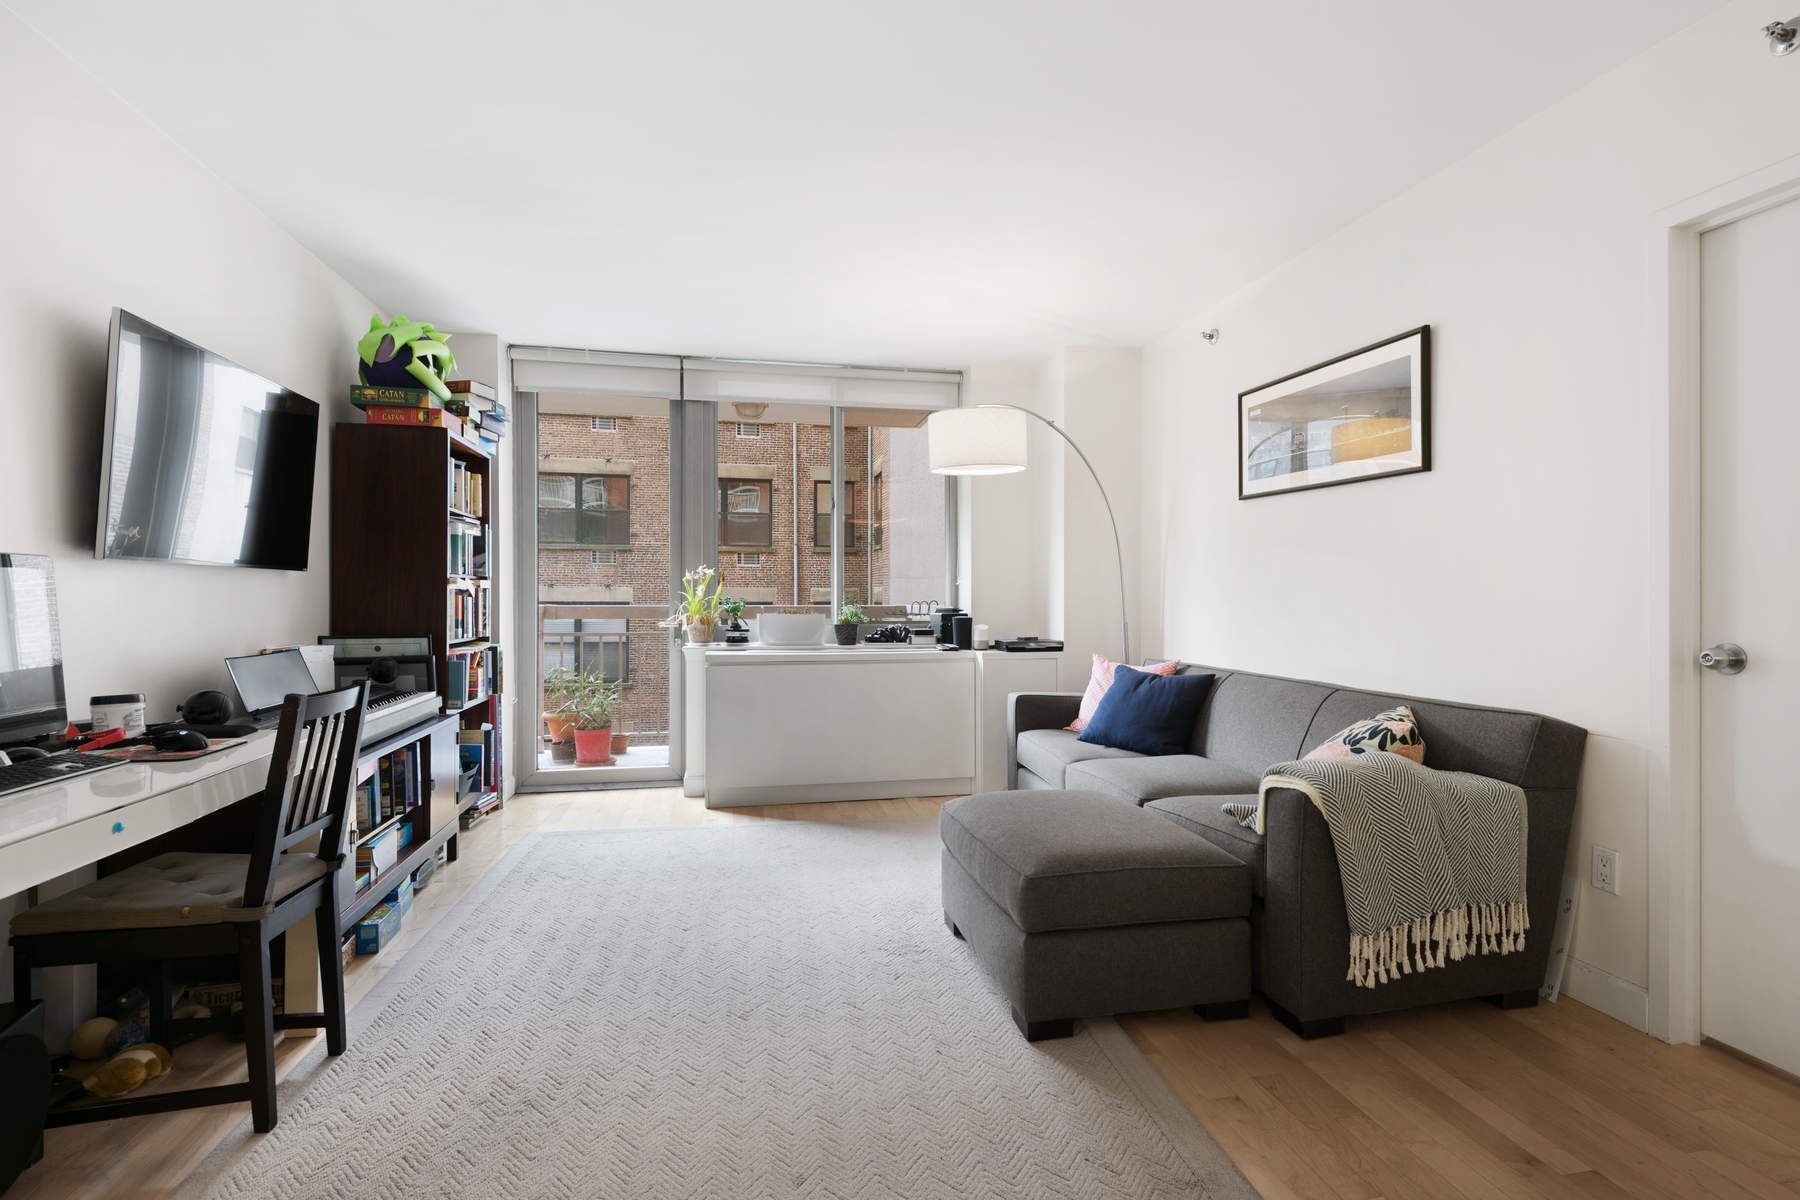 Apartment for Sale at Chelsea High Line 2Bd/2Bth w/ Balcony 520 West 23rd Street Apt 6B, Chelsea, New York, New York, 10011 United States